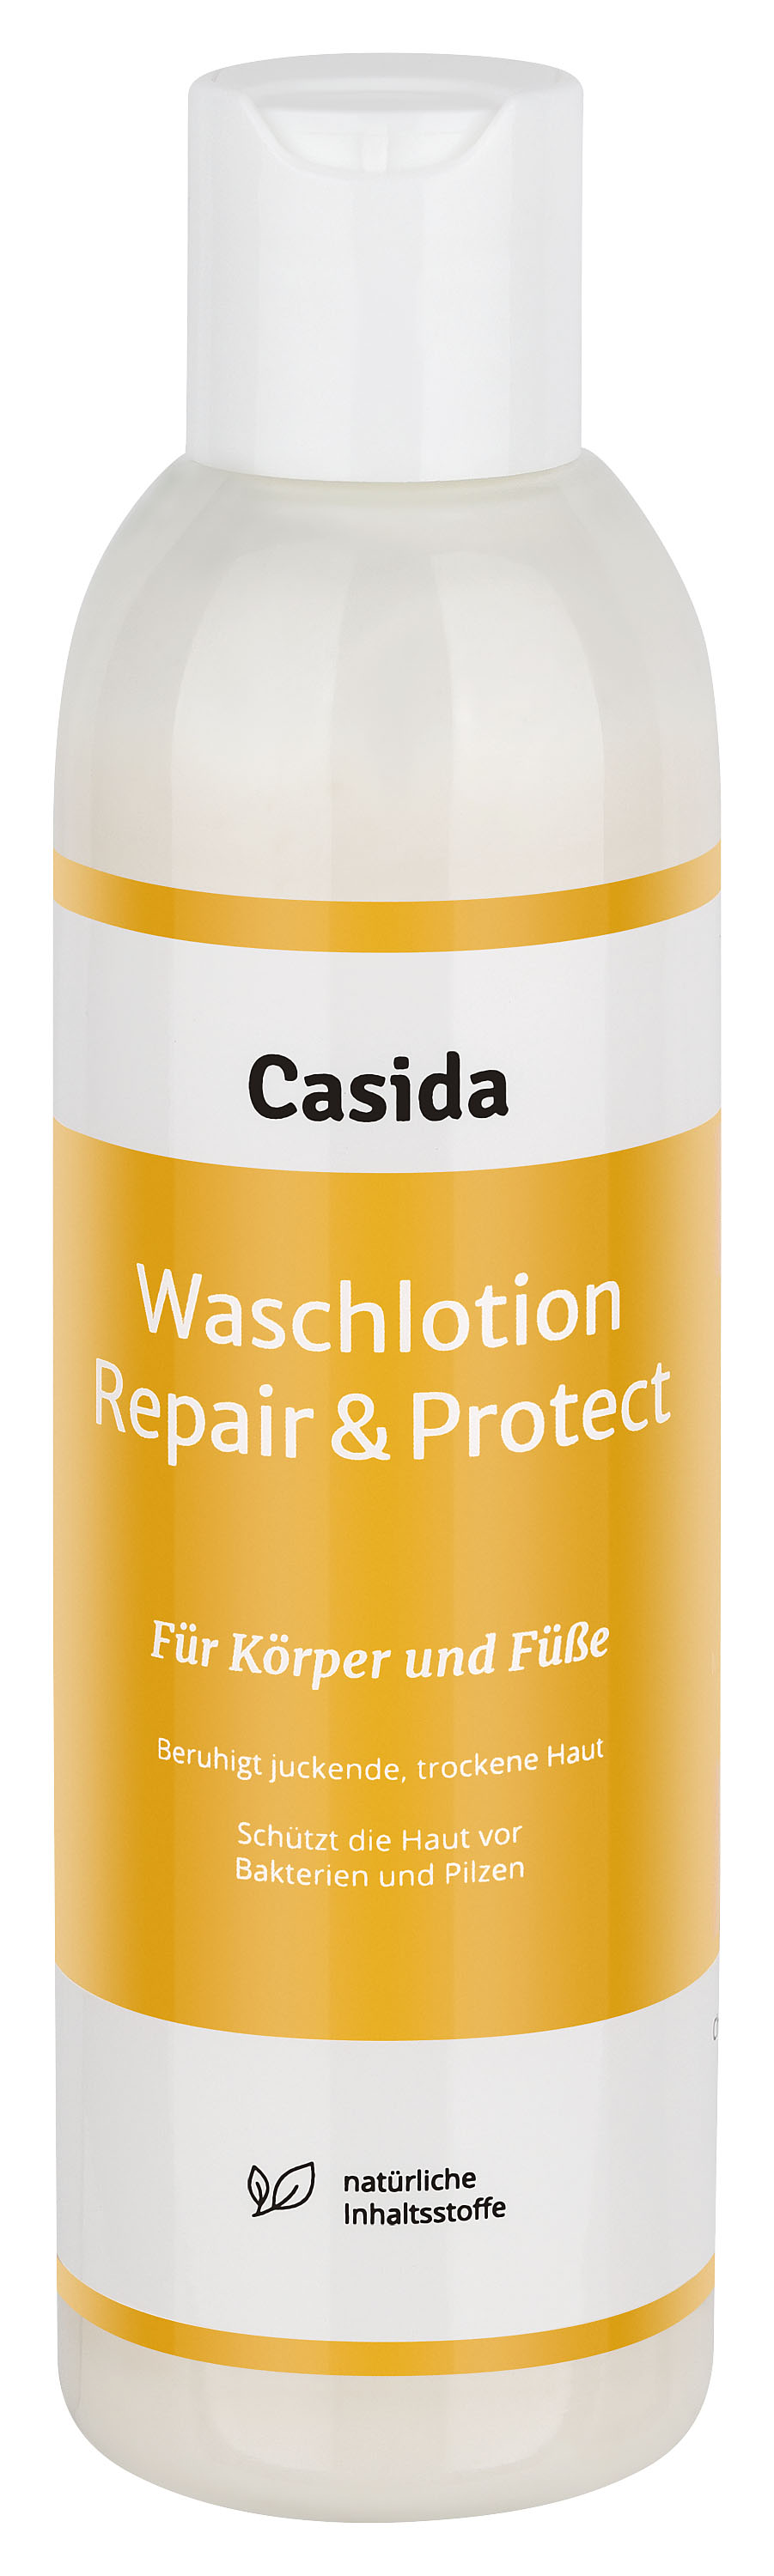 Waschlotion Repair & Protect